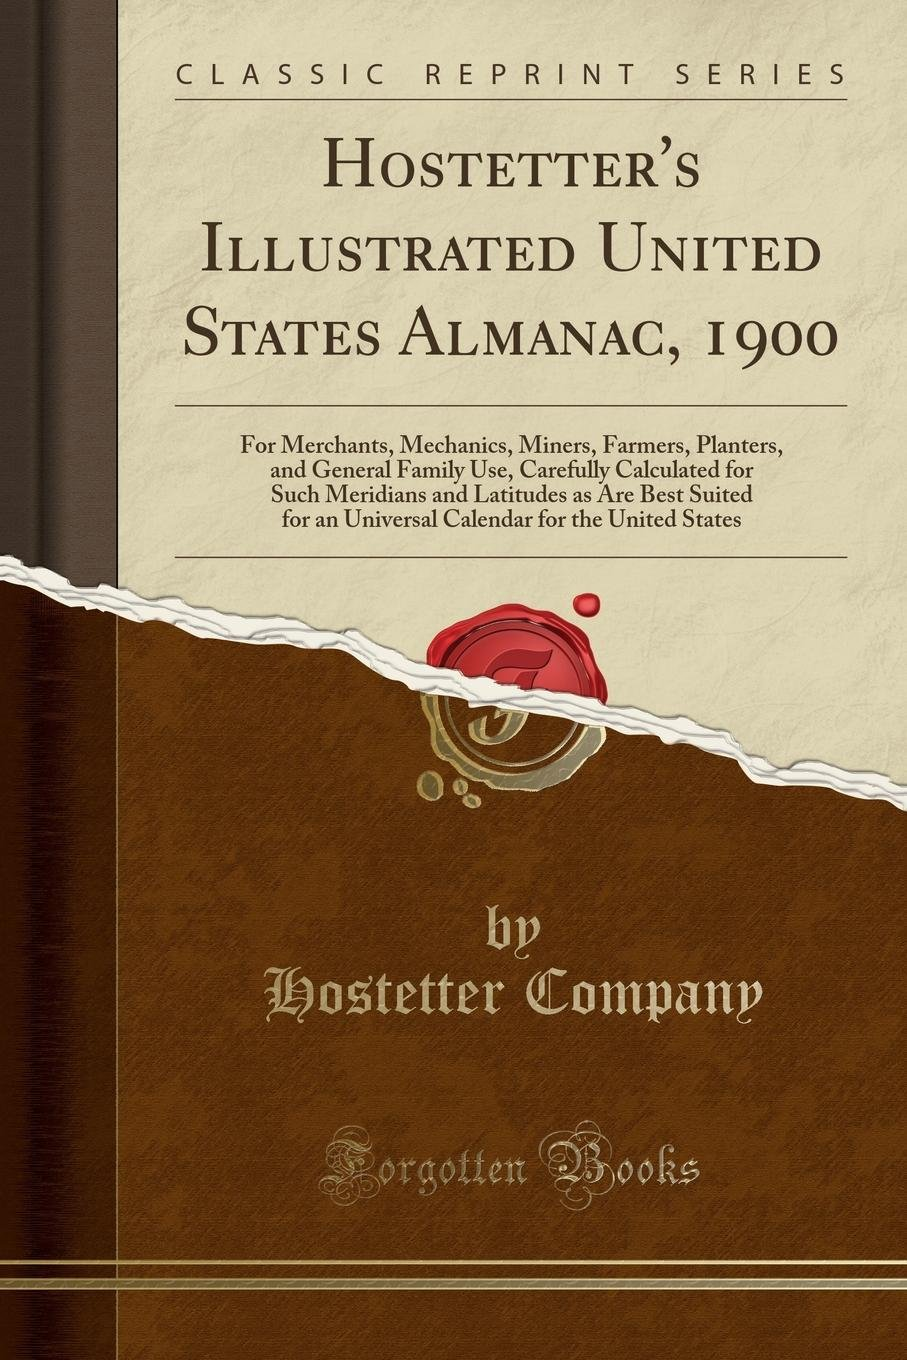 Read Online Hostetter's Illustrated United States Almanac, 1900: For Merchants, Mechanics, Miners, Farmers, Planters, and General Family Use, Carefully Calculated ... an Universal Calendar for the United States pdf epub